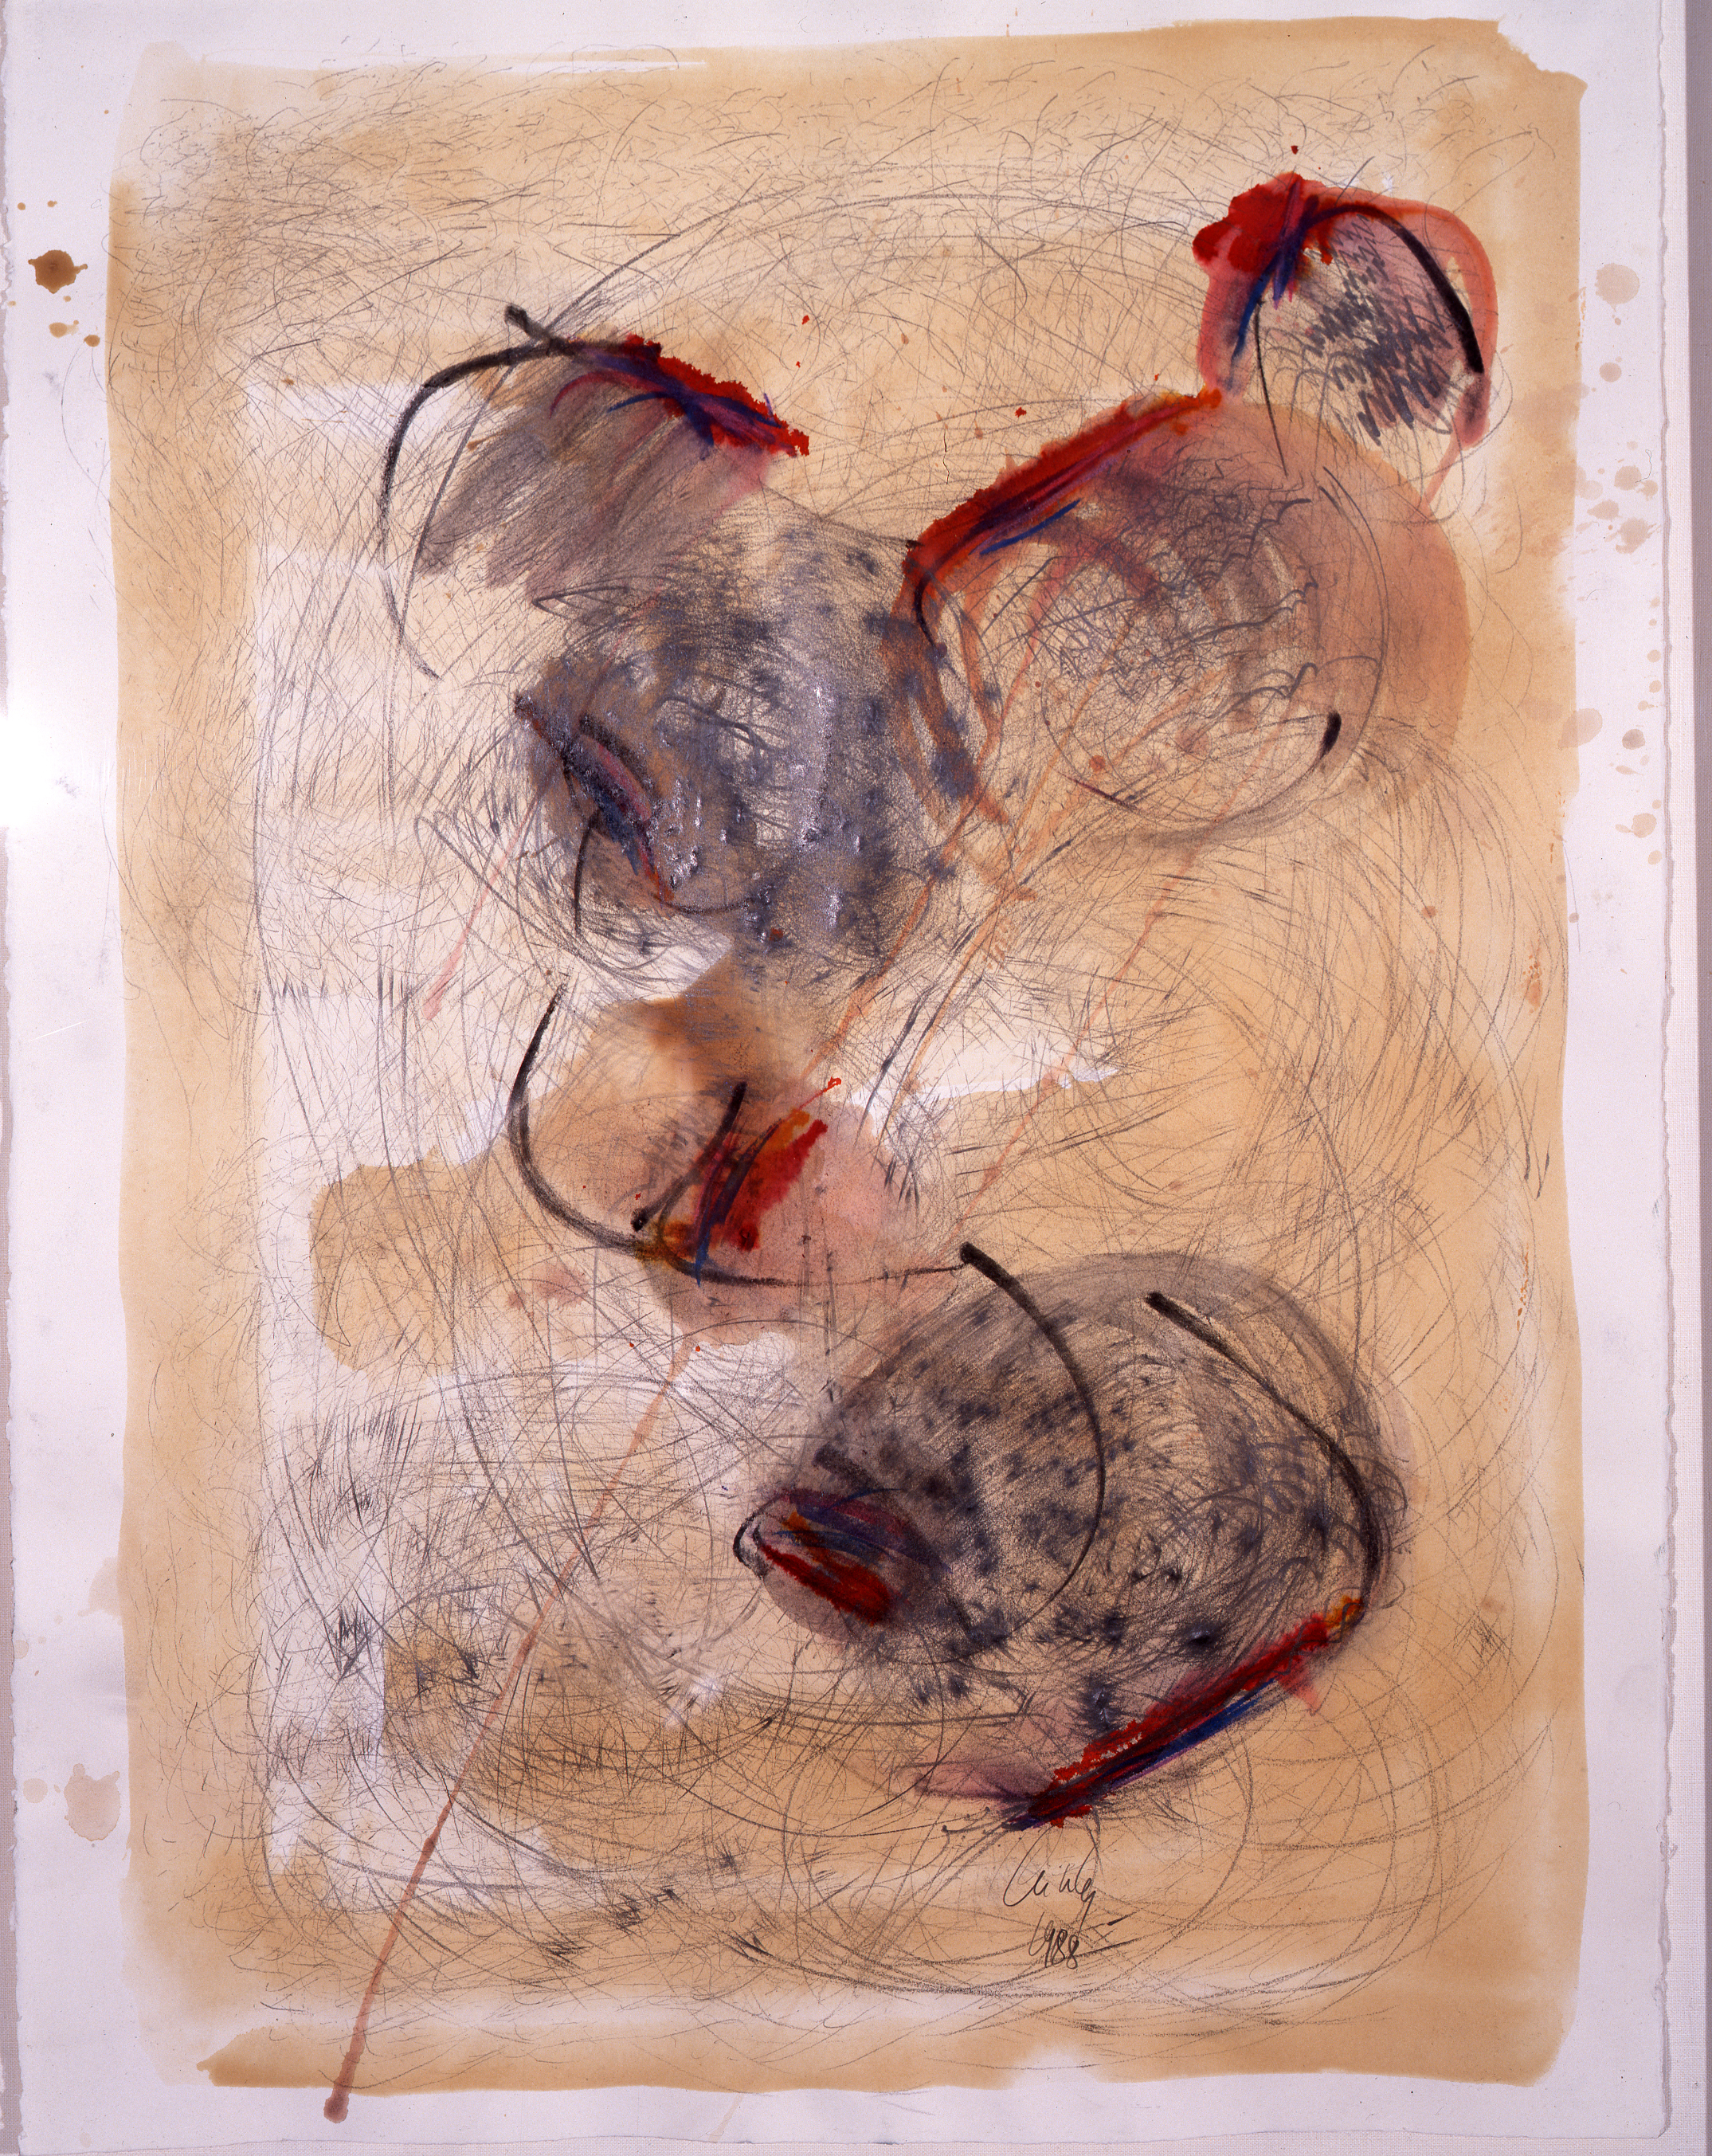 Dale Chihuly, Basket Drawing, (1988, mixed mediaon paper, 30 x 22 inches), DC.364